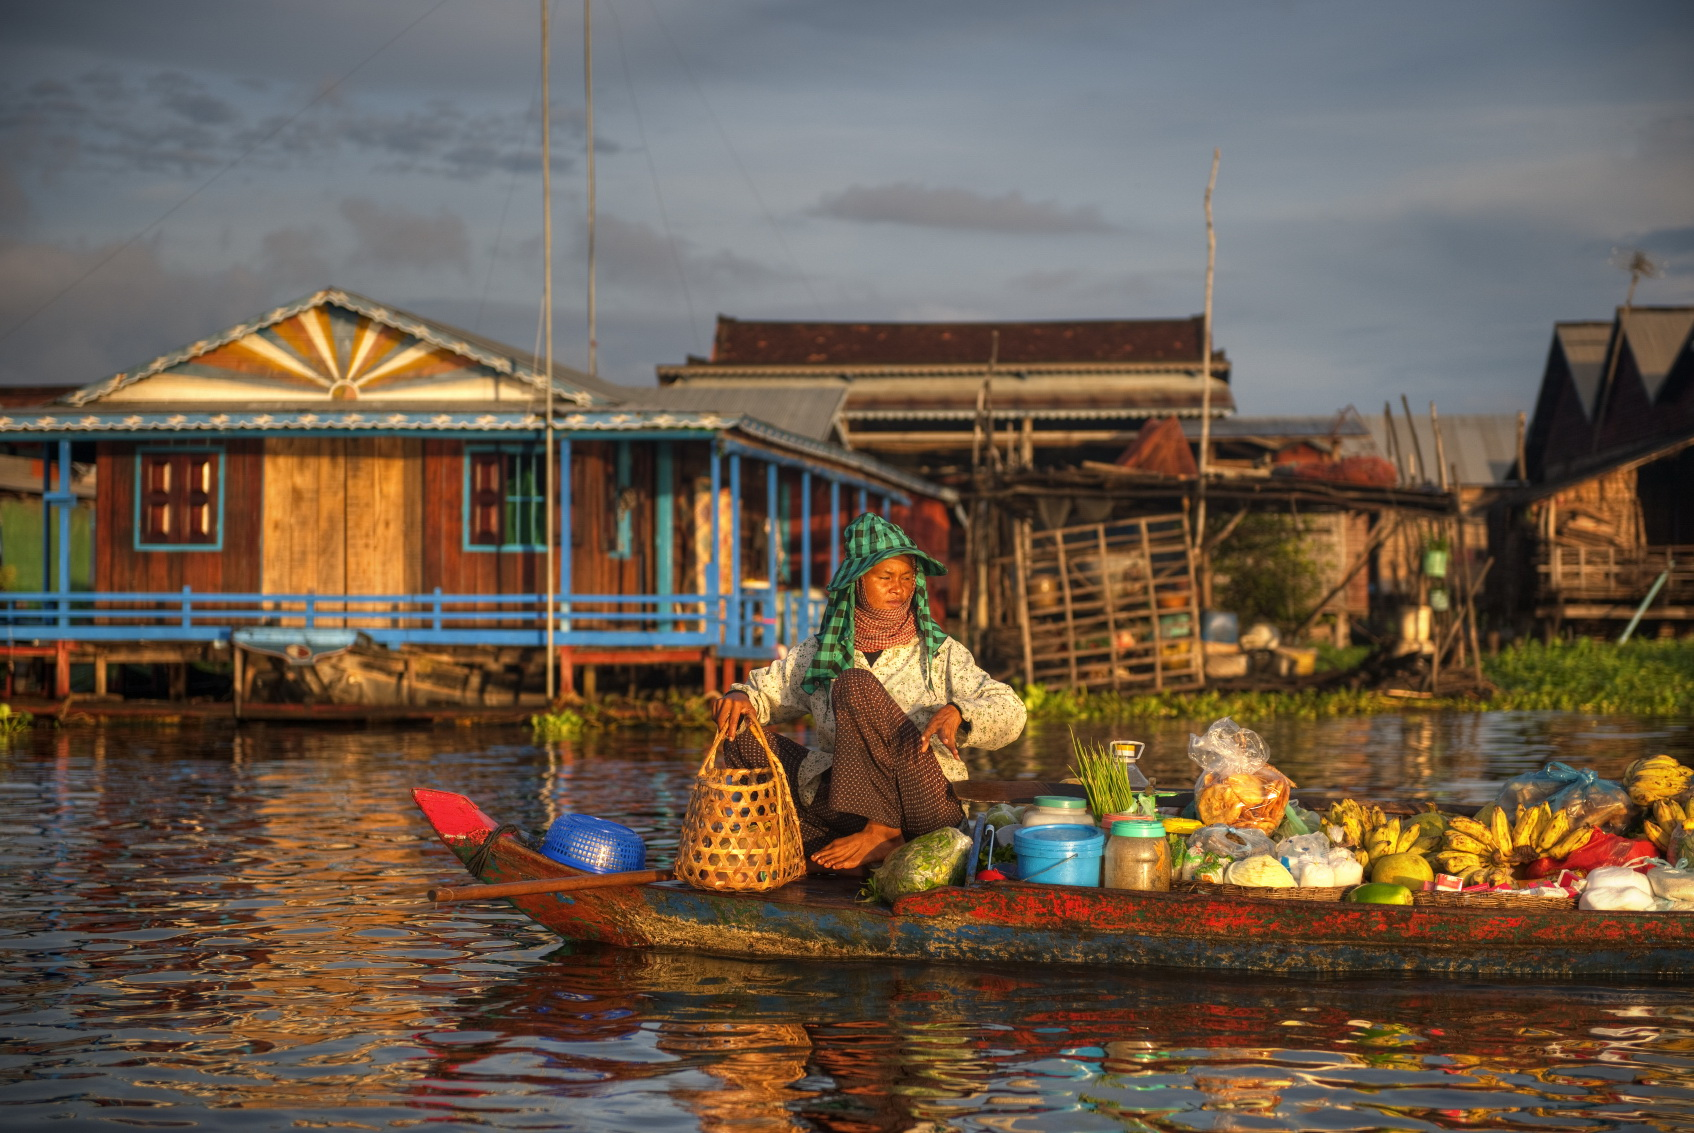 Tonle Sap is one of the biggest water basins in Southeast Asia and the country's main source of fish (photo: Asia Travel)